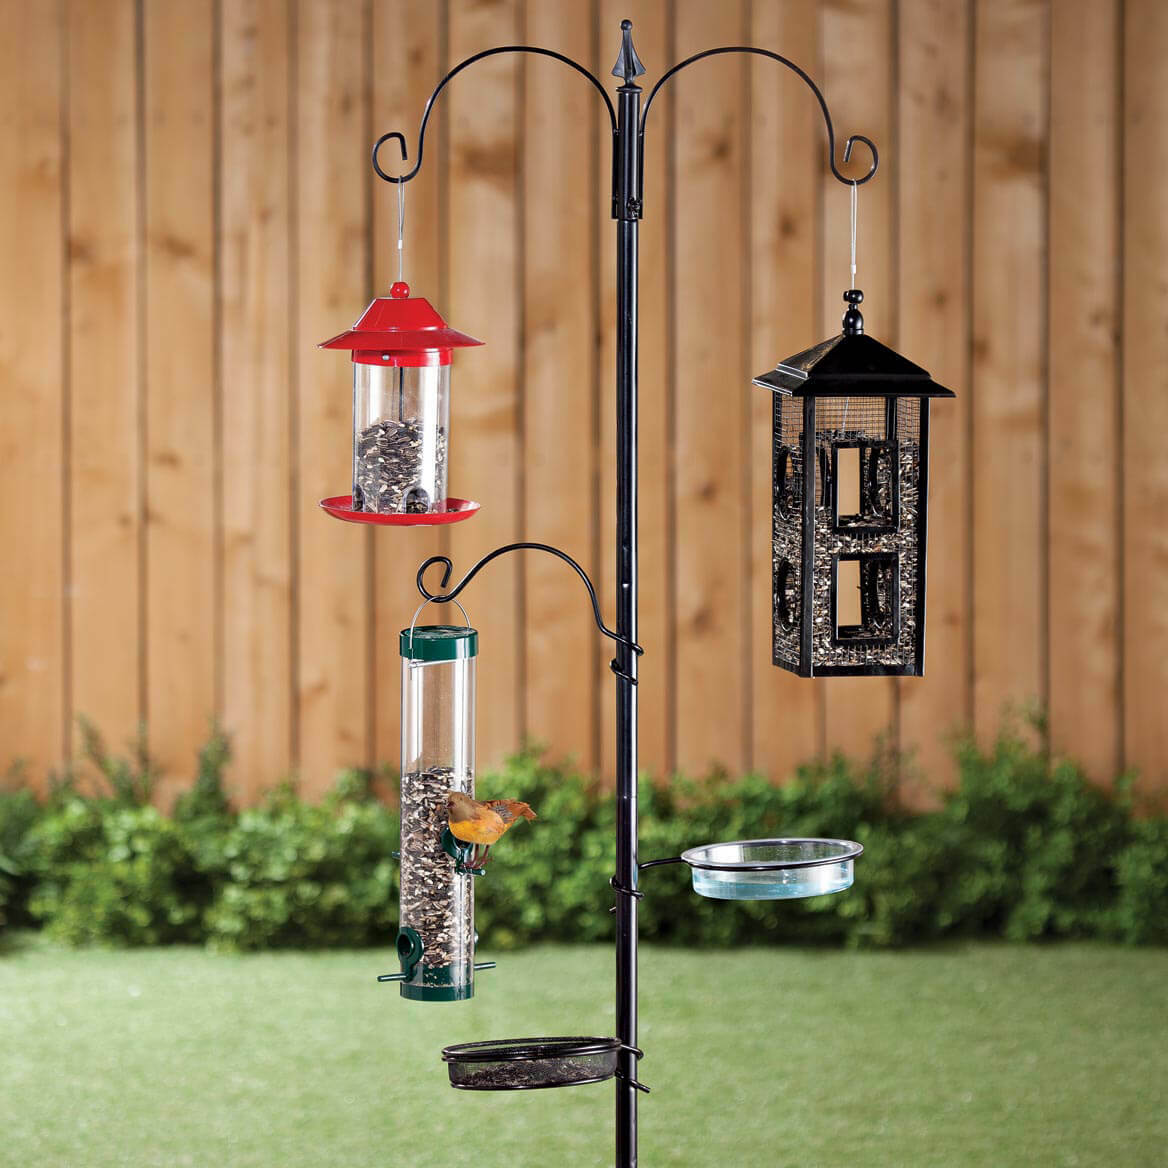 6 Foot Tall Heavy-Duty Wild Bird Metal 5 Tier Feeding Station